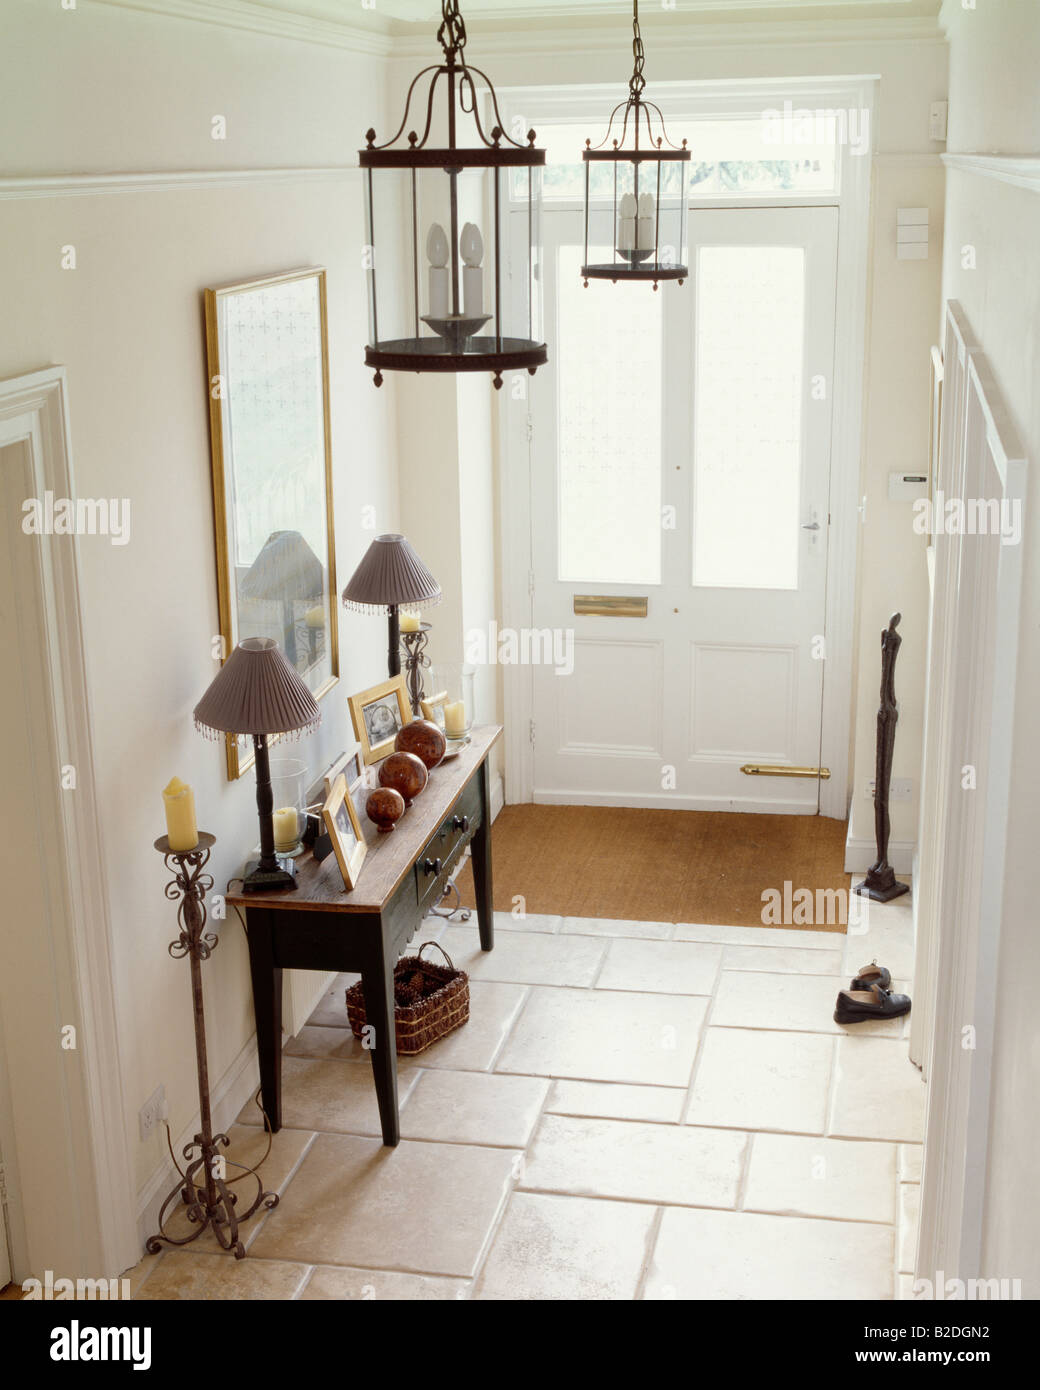 Limestone floor tiles in white hall with lantern lighting and lamps ...